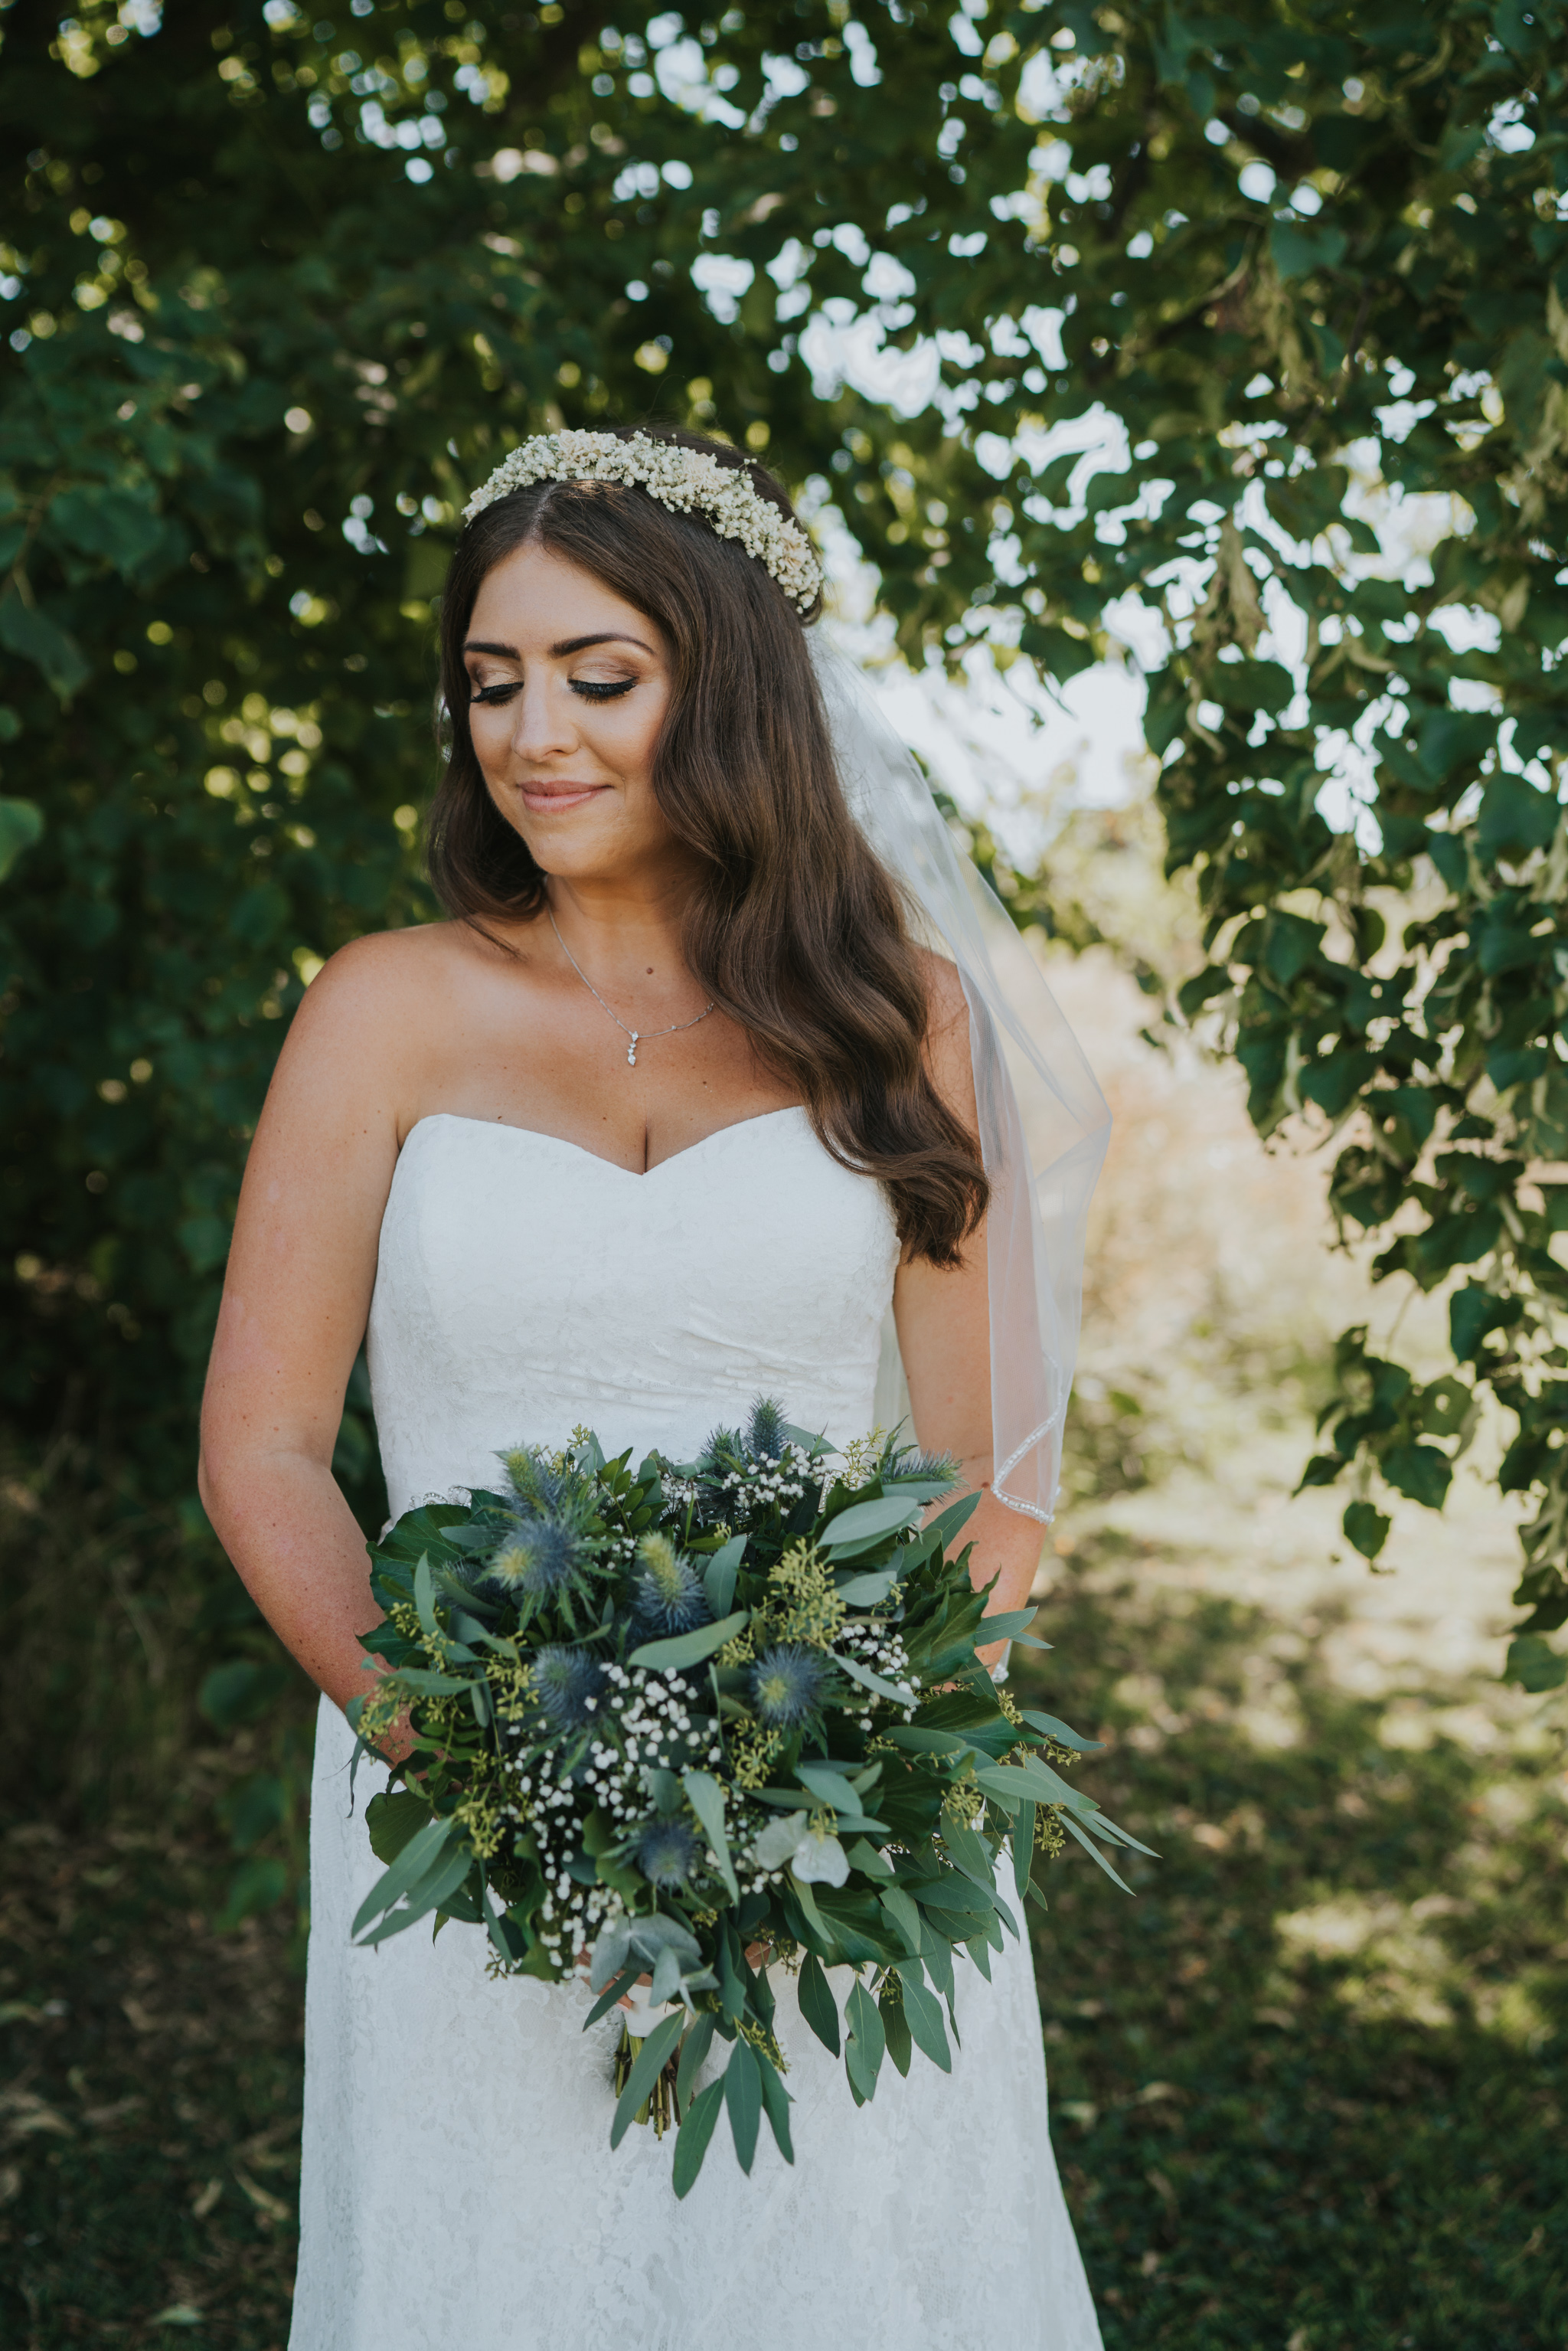 Sophie-Christian-Prested-Hall-DIY-Boho-Outdoor-Wedding-Grace-Elizabeth-Alternative-Wedding-Photographer-Colchester-Essex (76 of 113).jpg